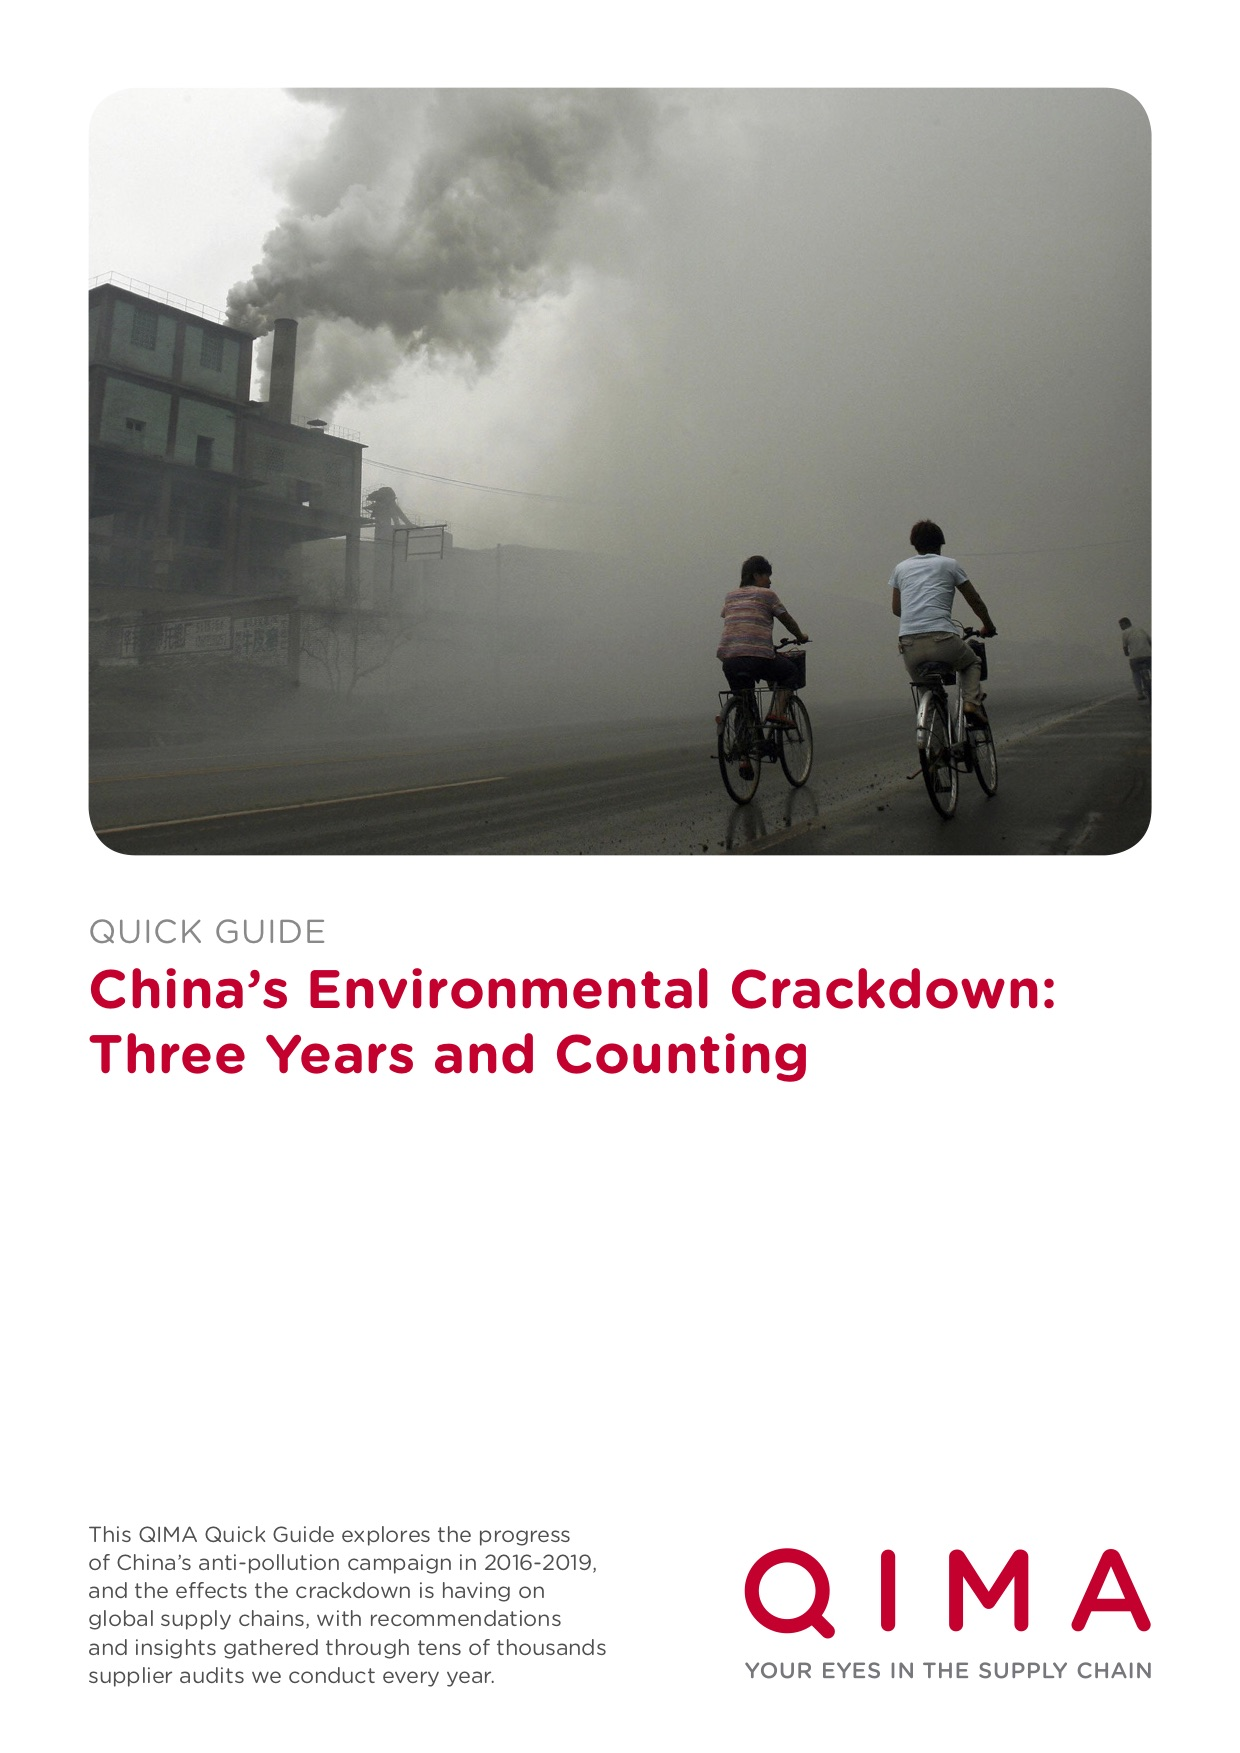 China's Environmental Crackdown: is Your Supply Chain Ready?